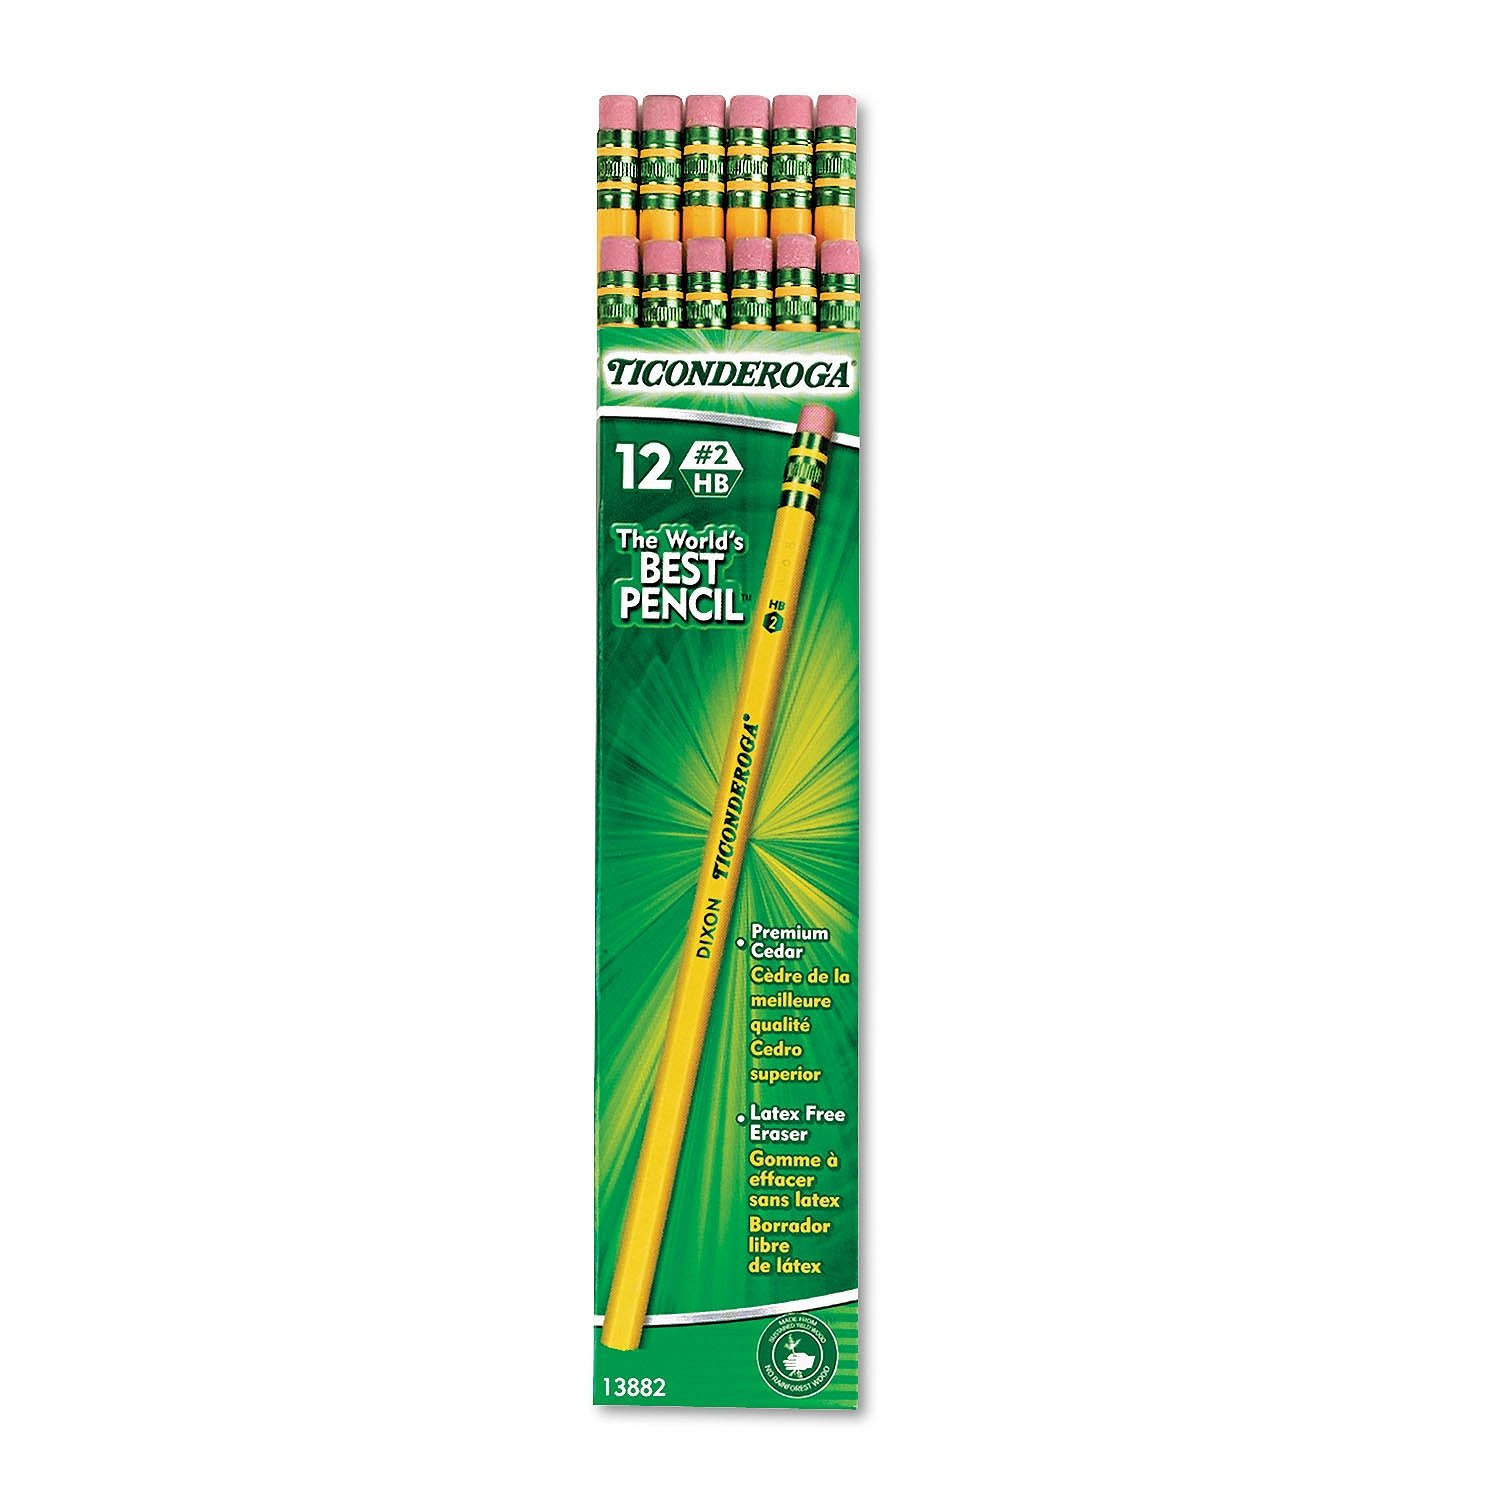 Ticonderoga SLGJHJ Woodcase Pencil, HB #2, Yellow Barrel, 96/Pack 4 Pack by Ticonderoga (Image #3)